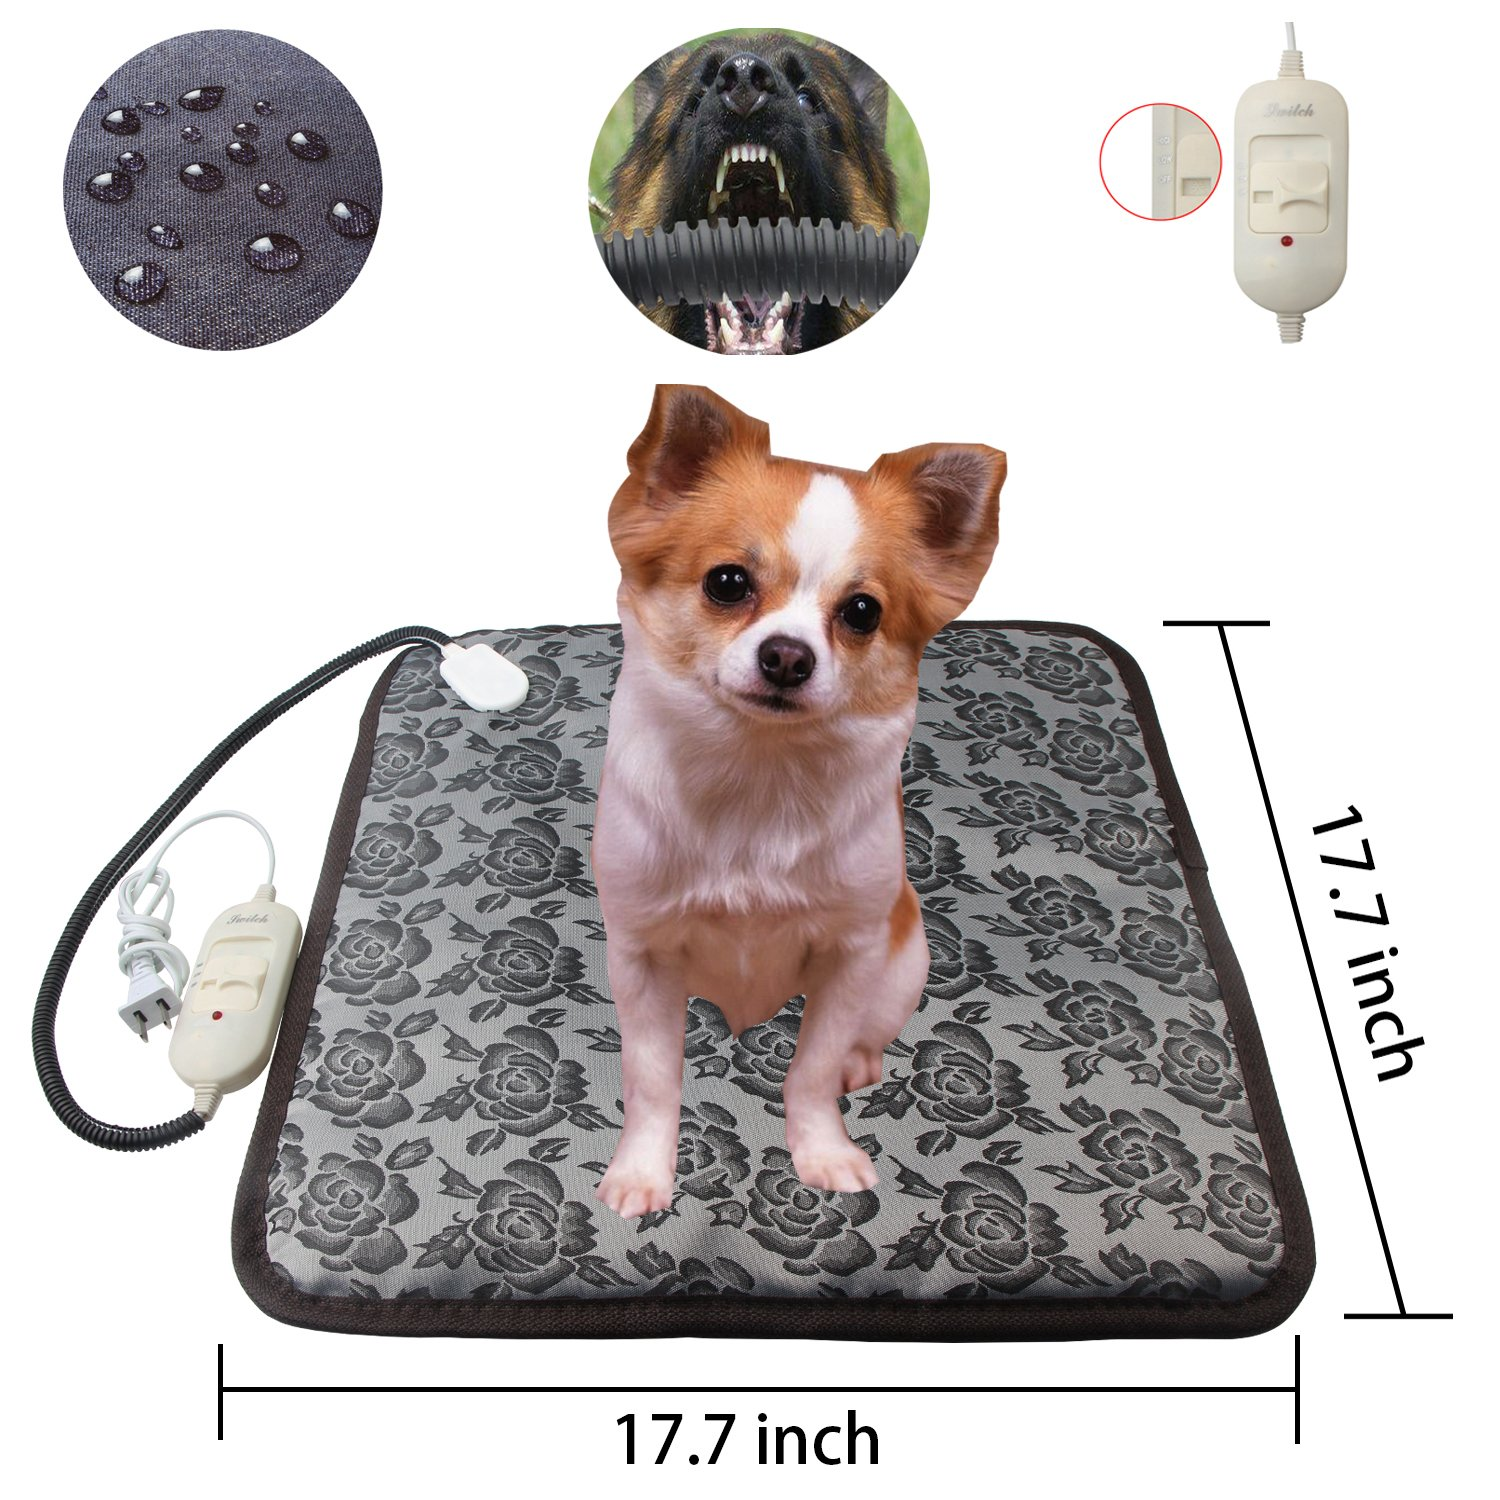 COVOART Waterproof Pet Heating Pad,Electric Adjustable Warming Dog Cat Heating Mat with Chew Resistant Steel Cord and Power-Off Protection 17.7''x17.7'' by COVOART (Image #2)